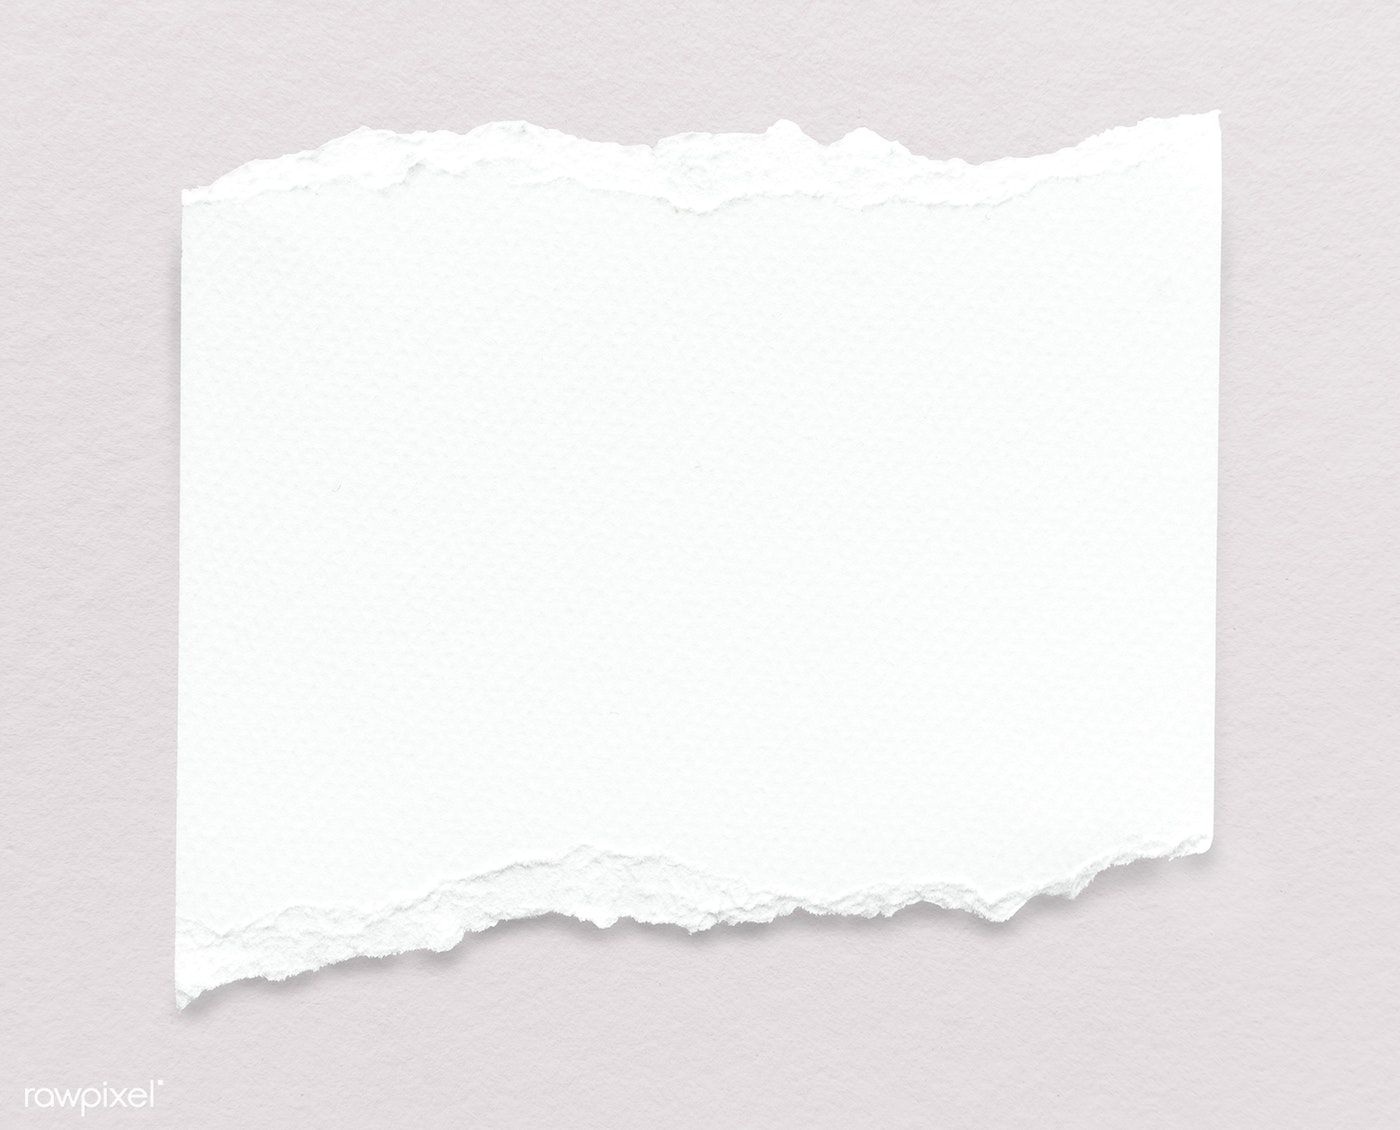 download premium psd of blank torn white paper template